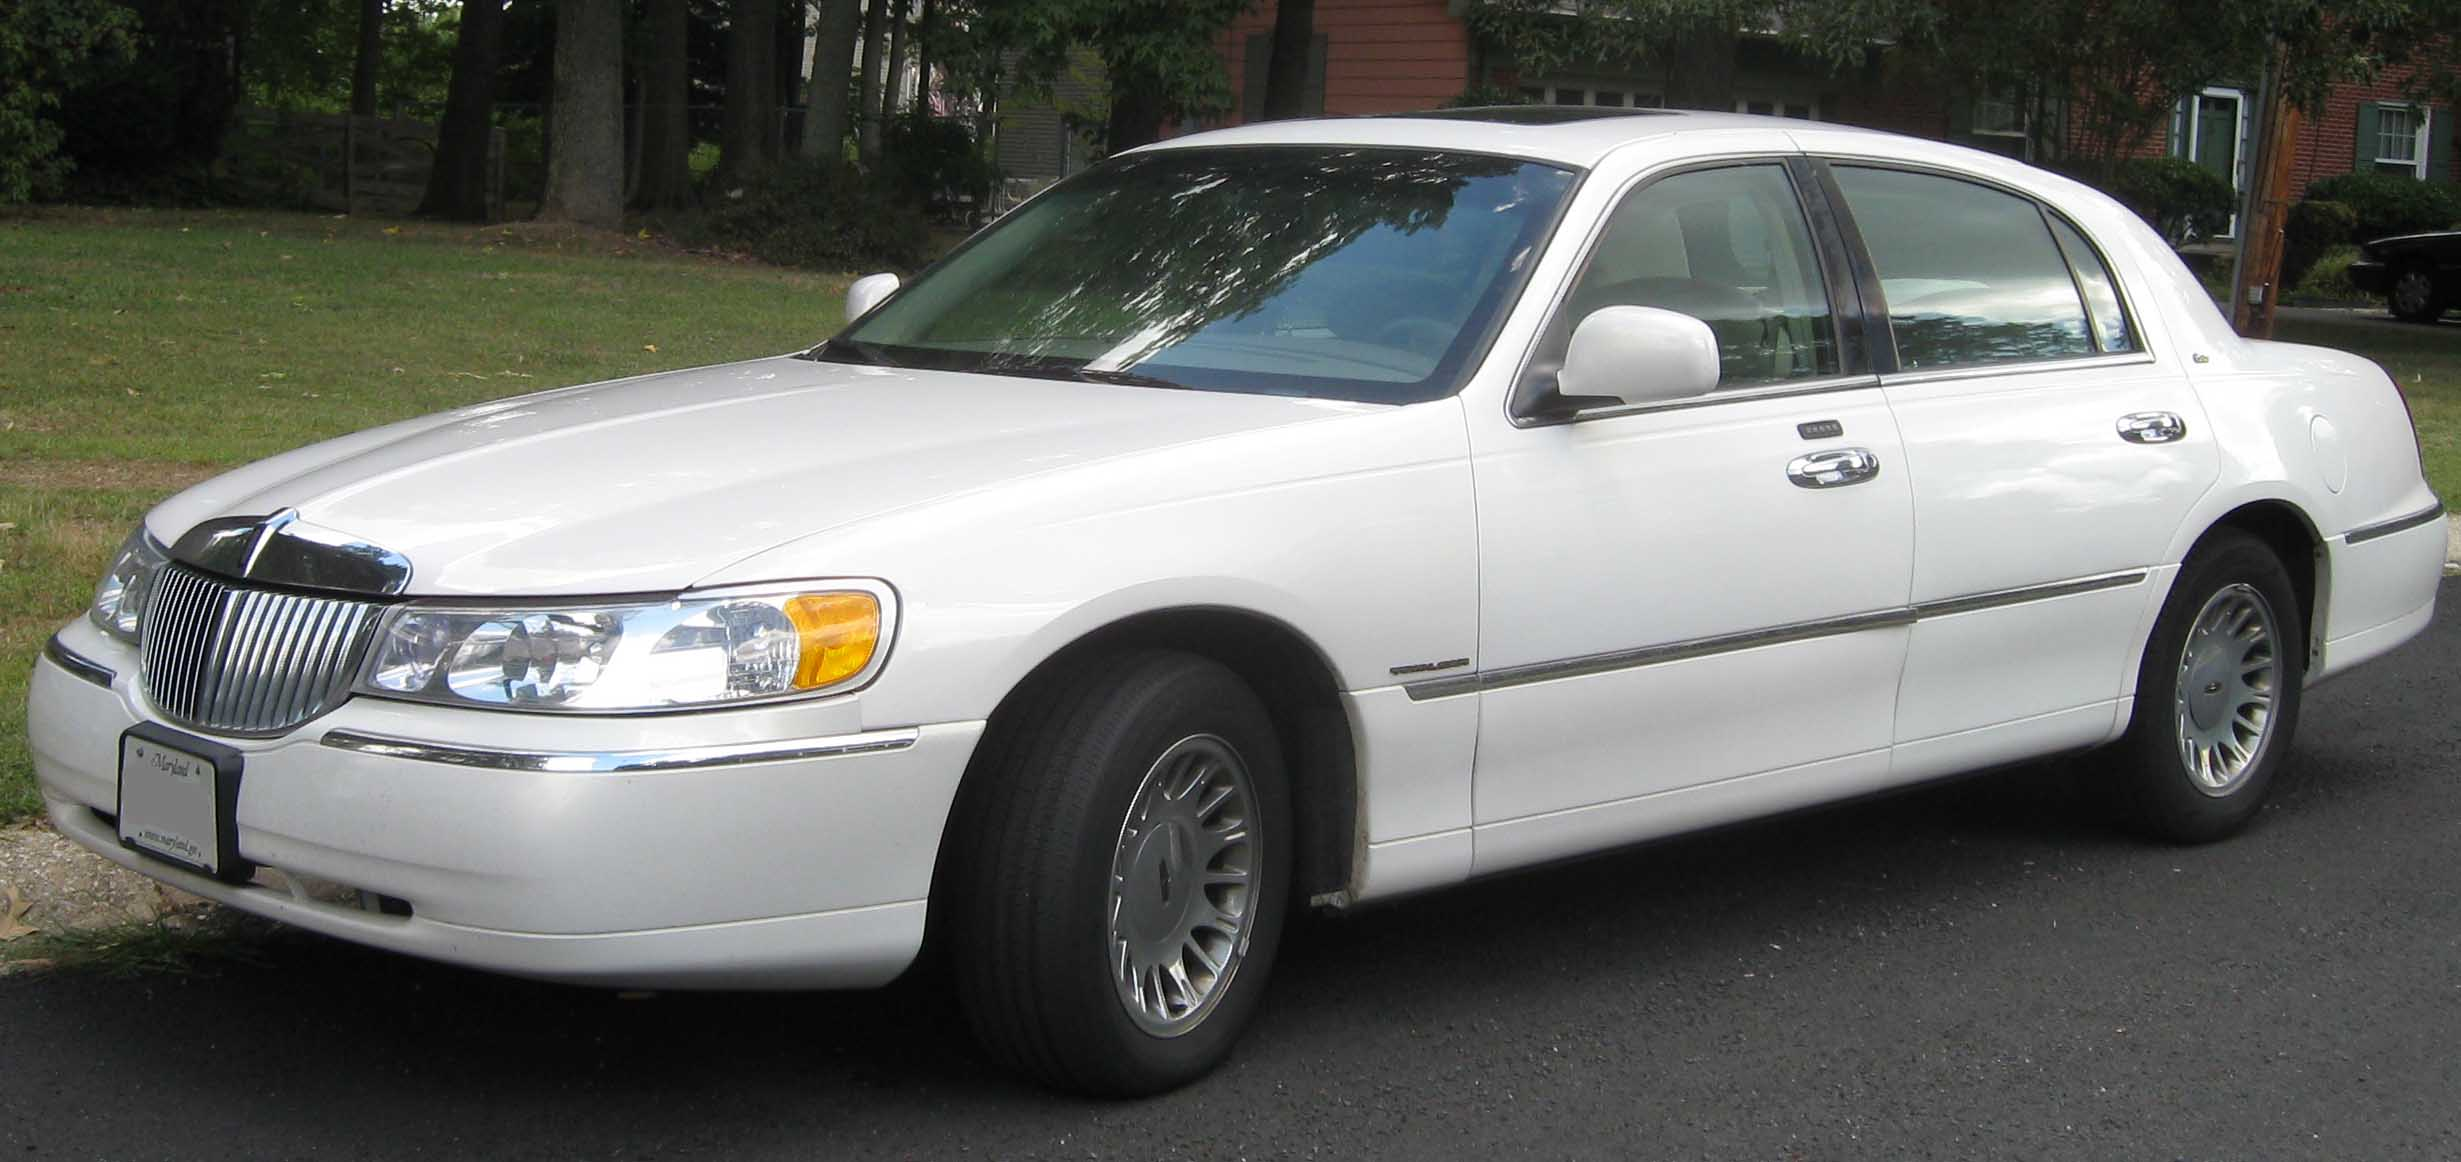 File 98 02 Lincoln Town Car Cartier Jpg Wikimedia Commons